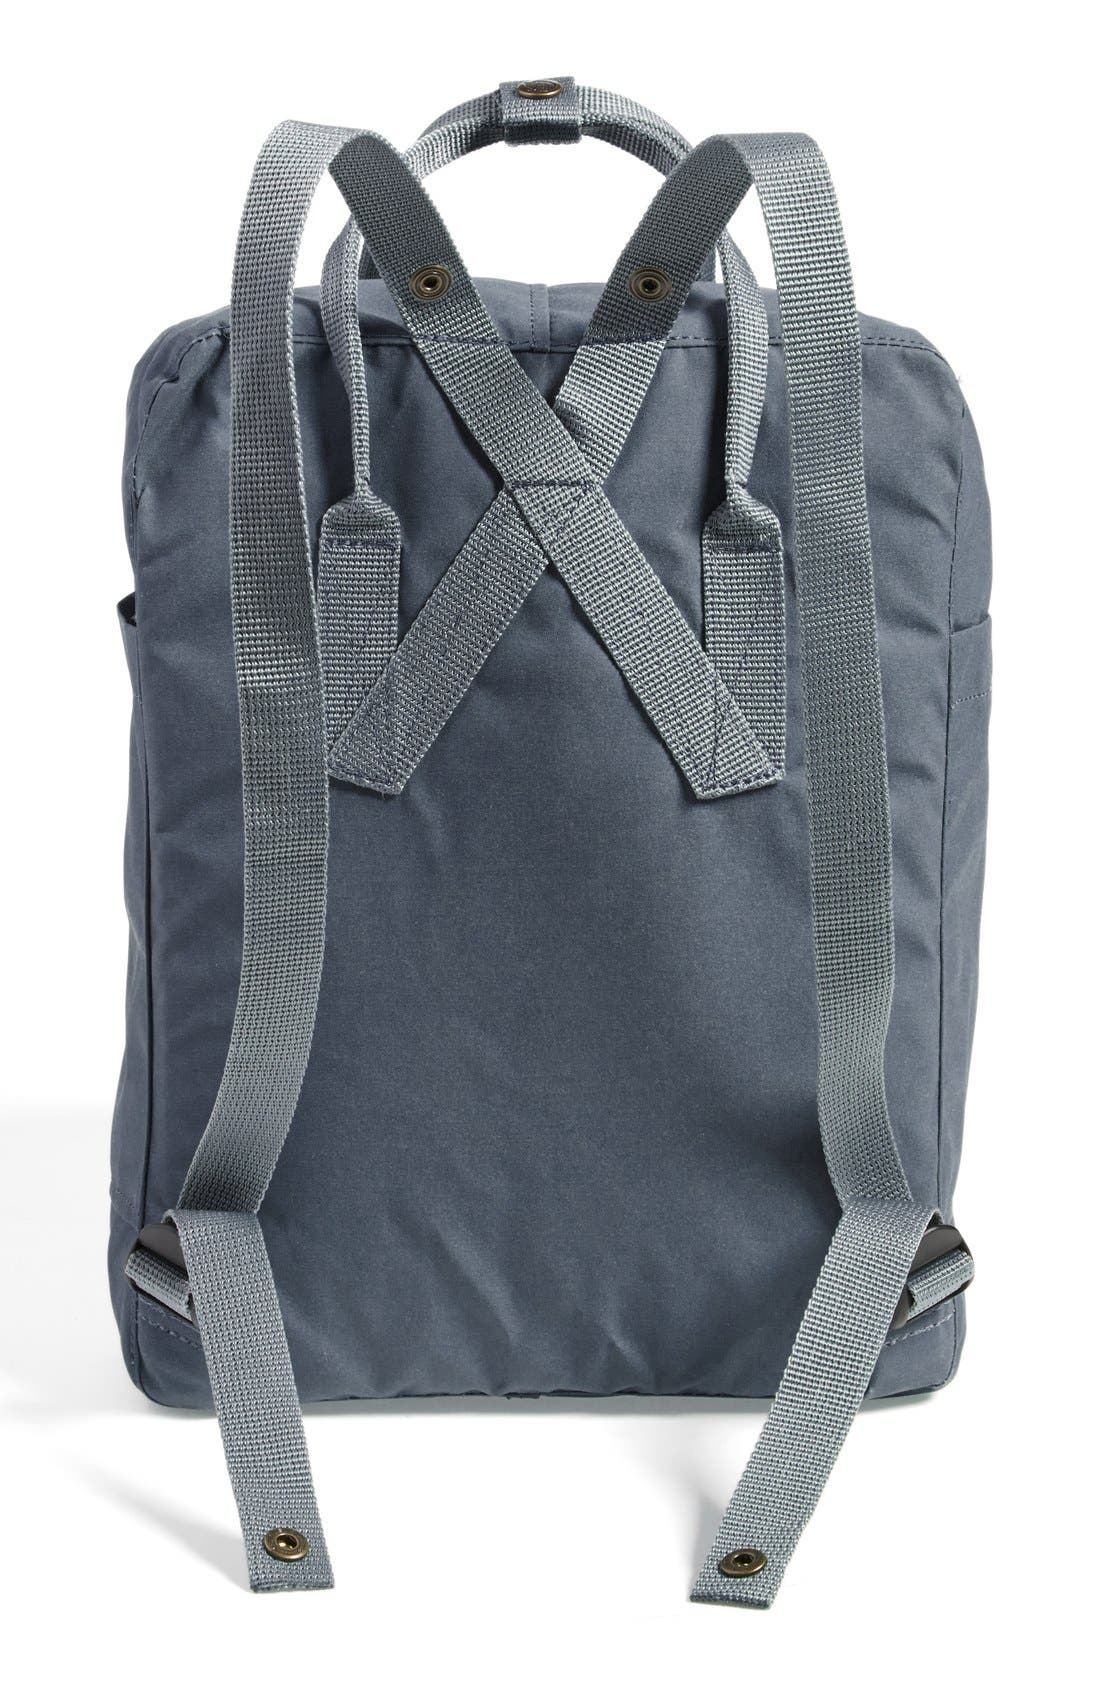 'Kånken' Water Resistant Backpack,                             Alternate thumbnail 7, color,                             022